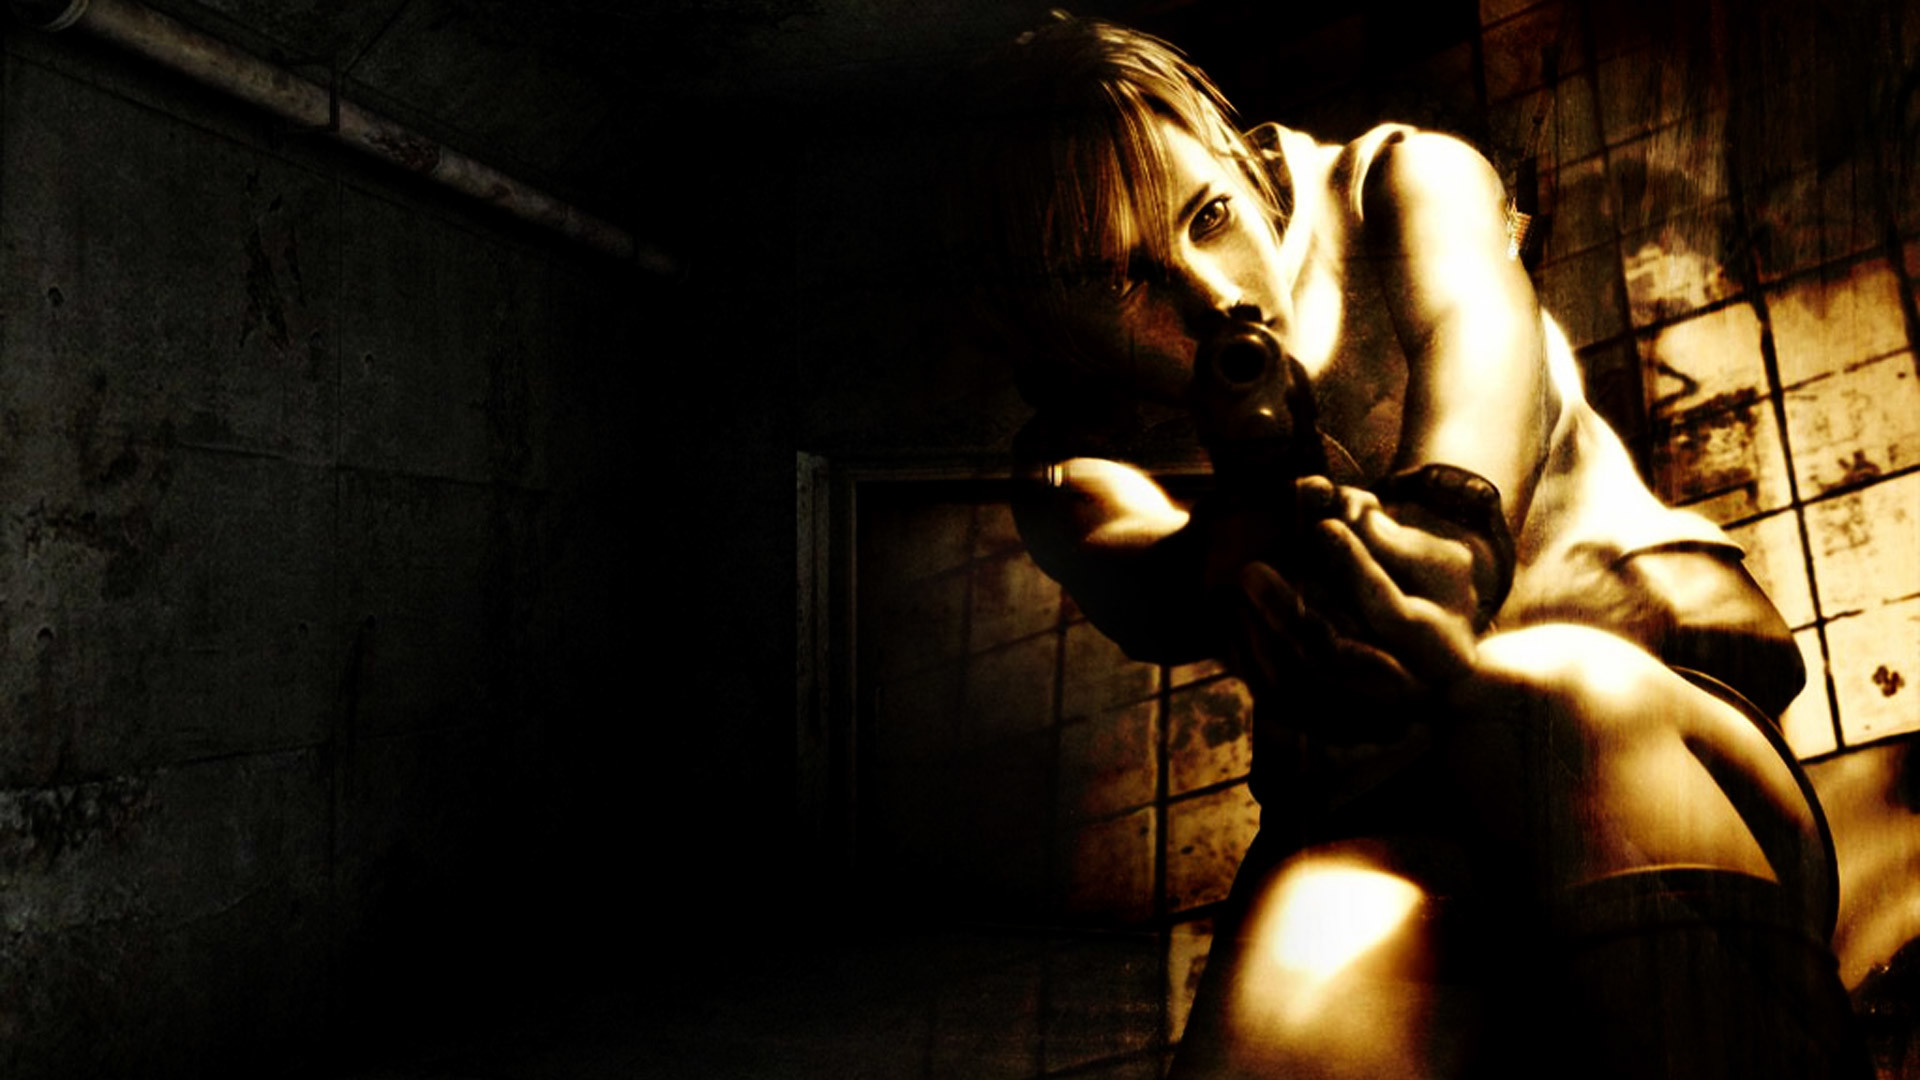 1920x1080 Silent Hill 3 Wallpaper in